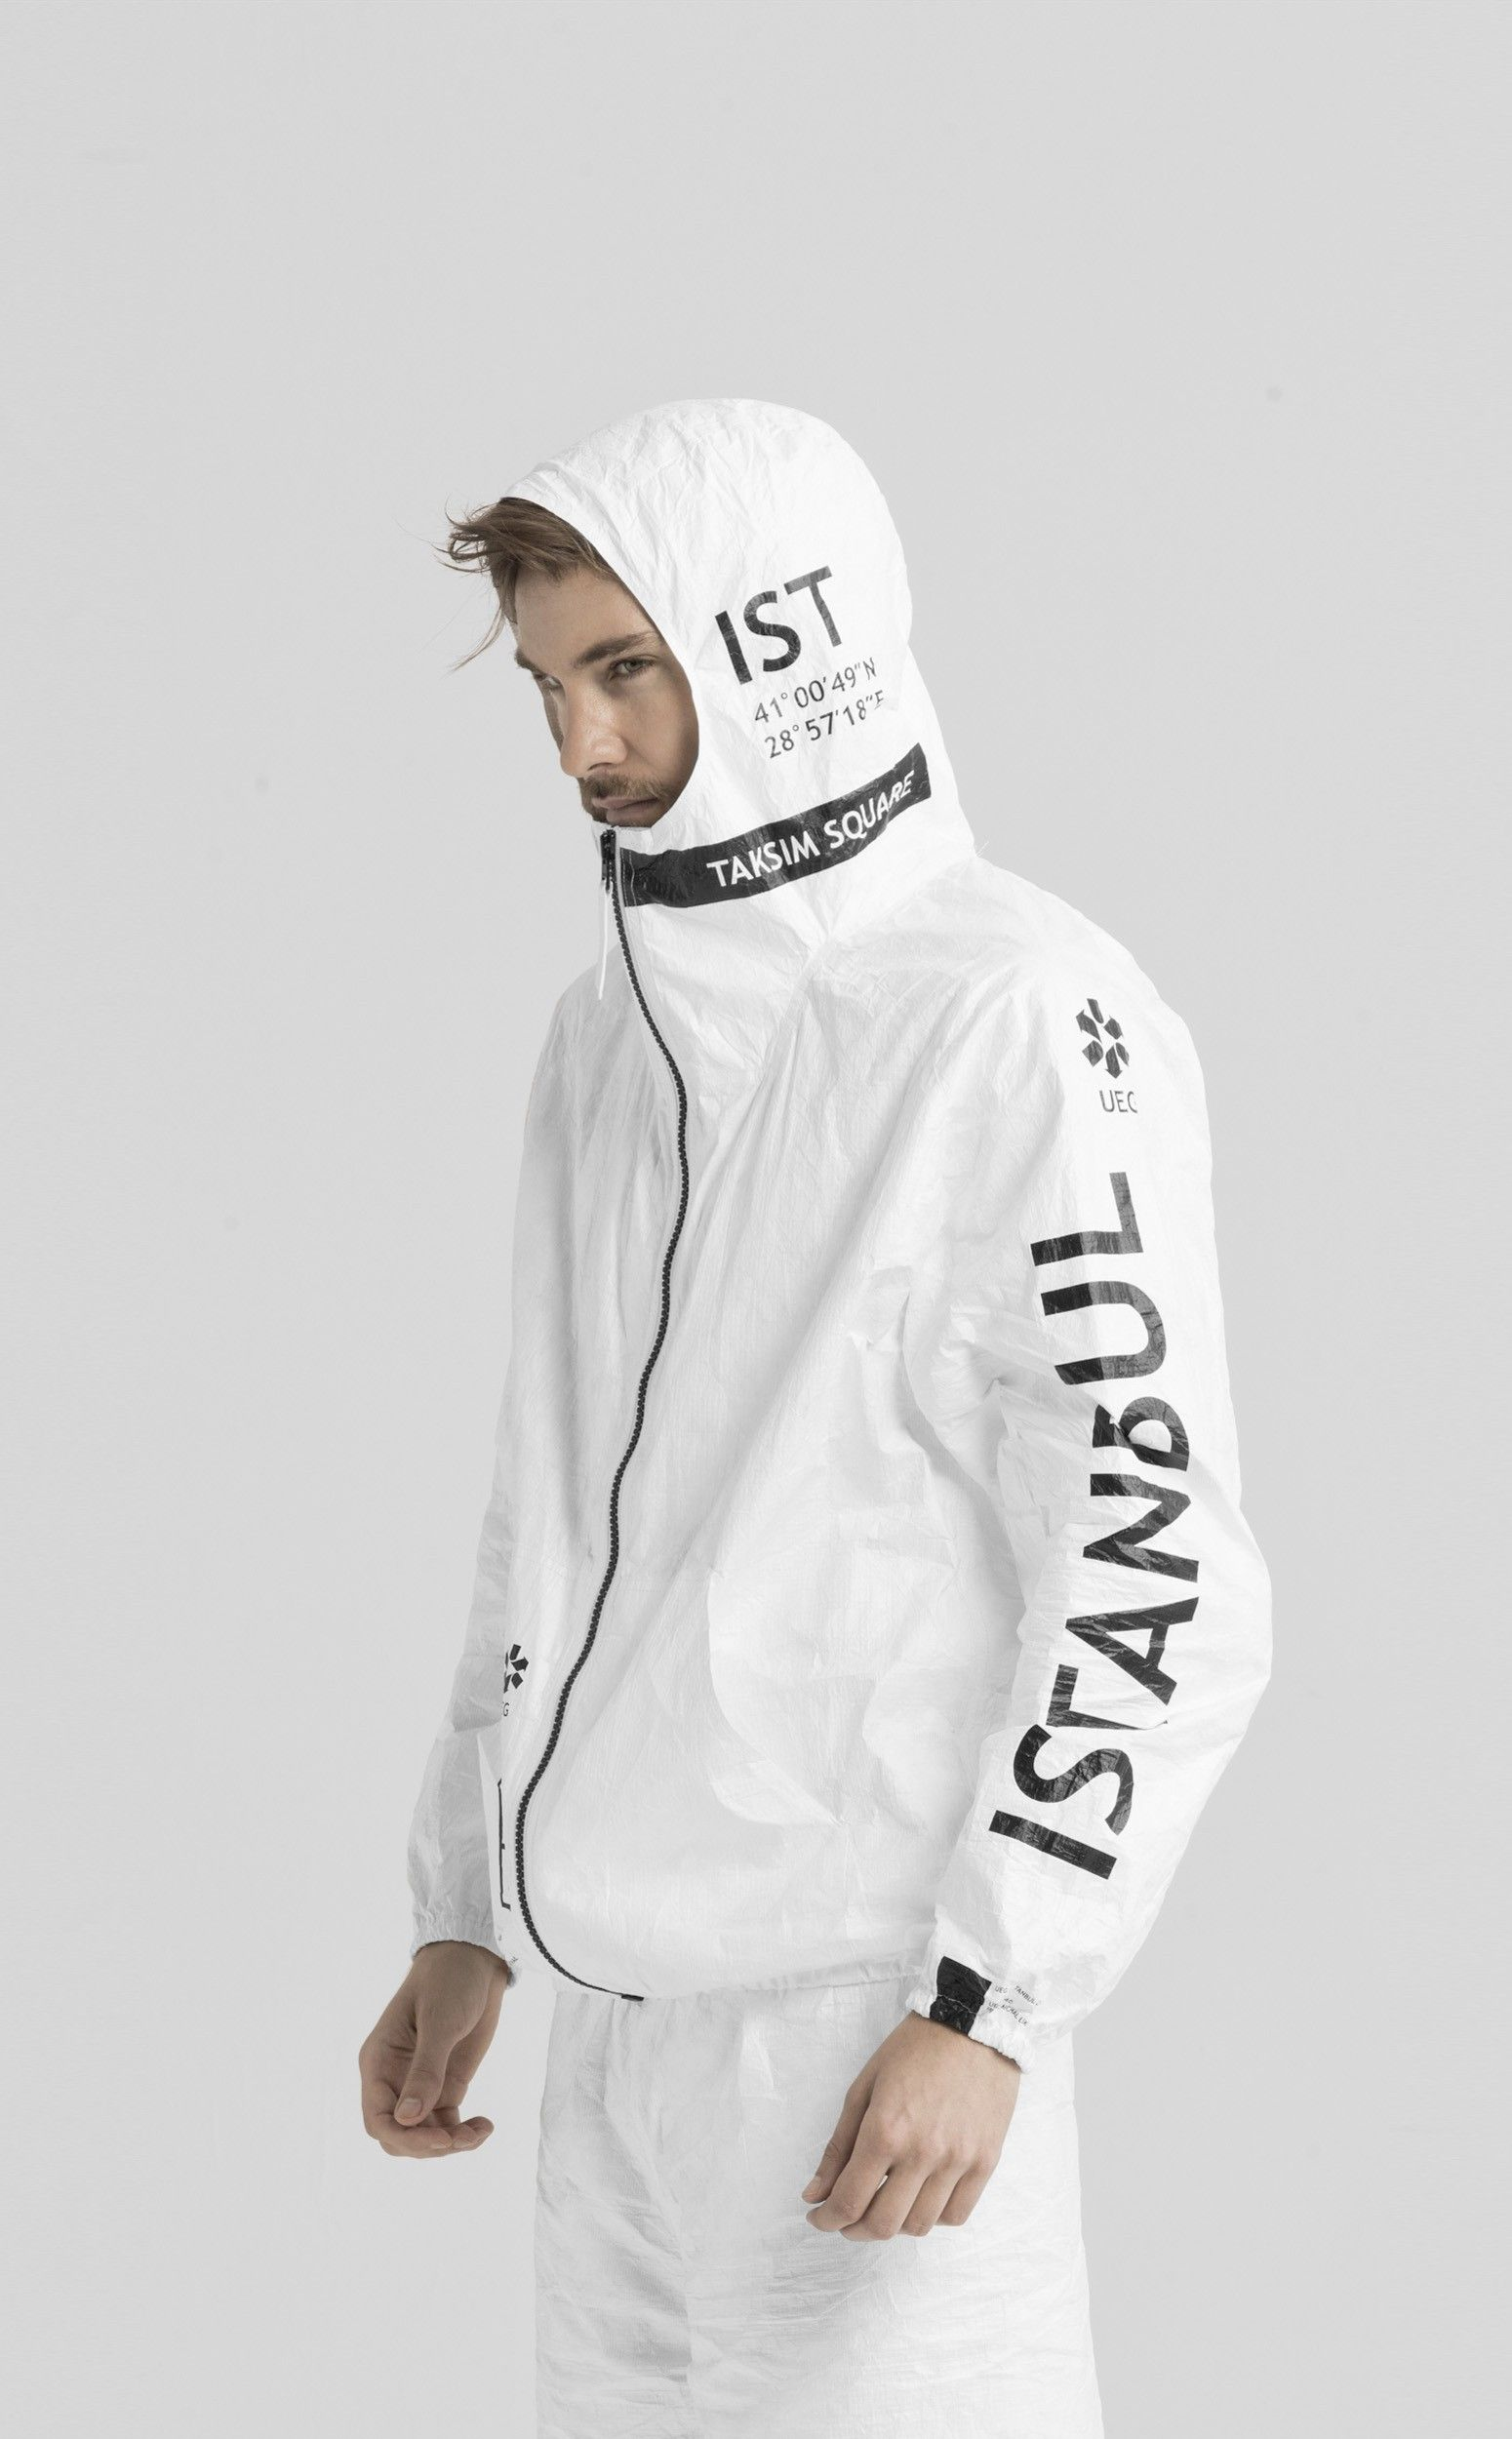 """Tyvek Istanbul zip-up jacket, from UEG's Cities project. """"UEG CITIES PROJECT IS A PART OF LIFESTYLE PACKAGING LINE THAT EXPLORES CLOTHING AS A METAPHOR OF PACKAGING FOR HUMAN BODY."""""""